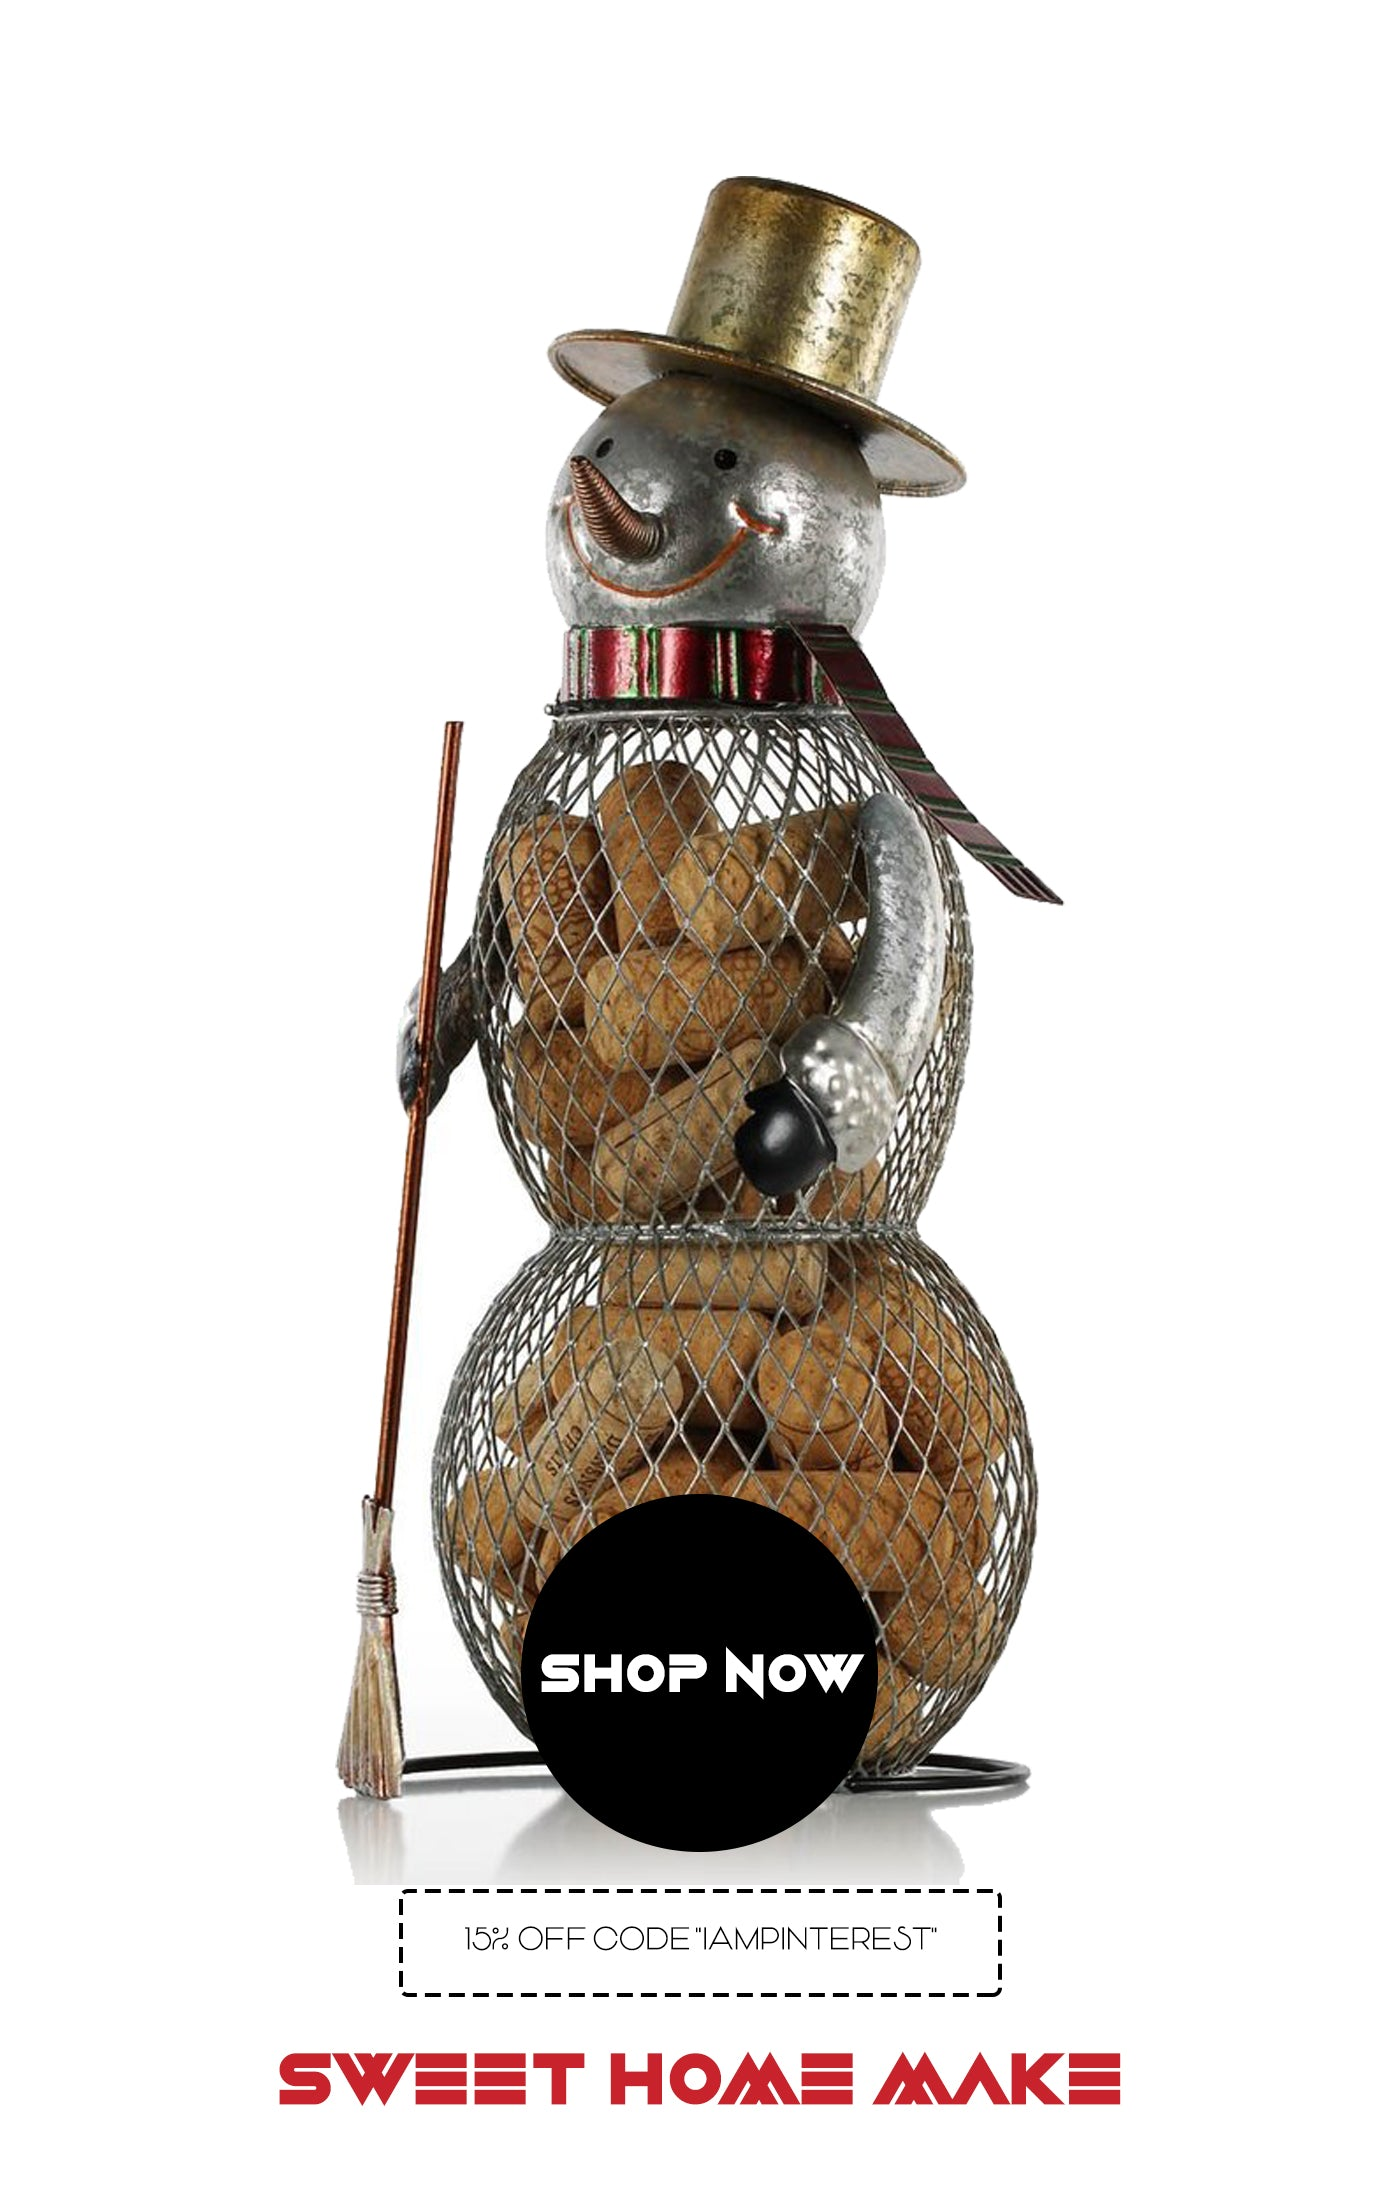 Home Decor Store with Snowman Metal Sculpture